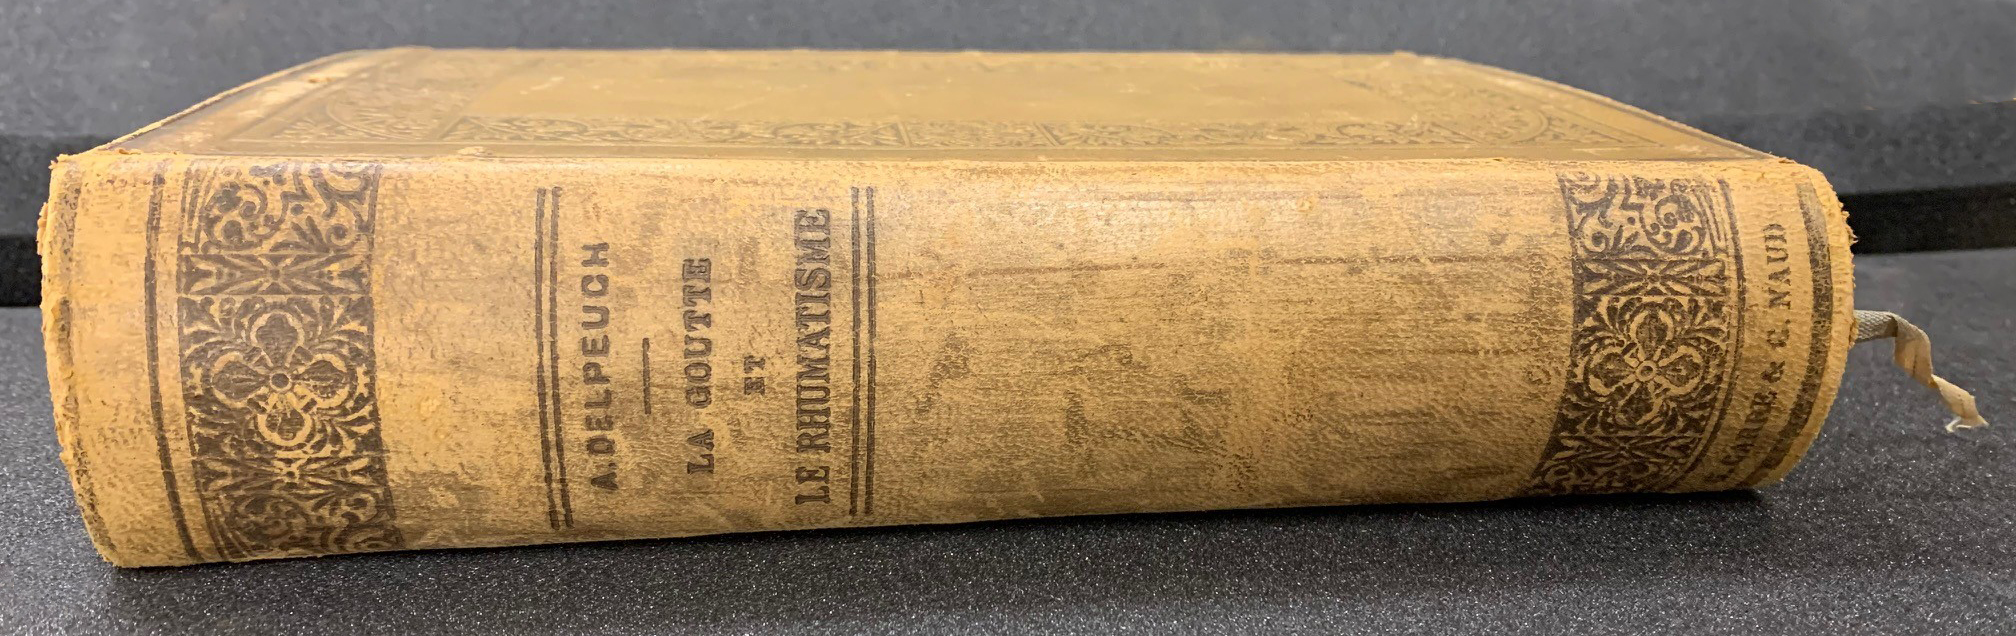 Leather bound book titled La goutte & le rheumatism